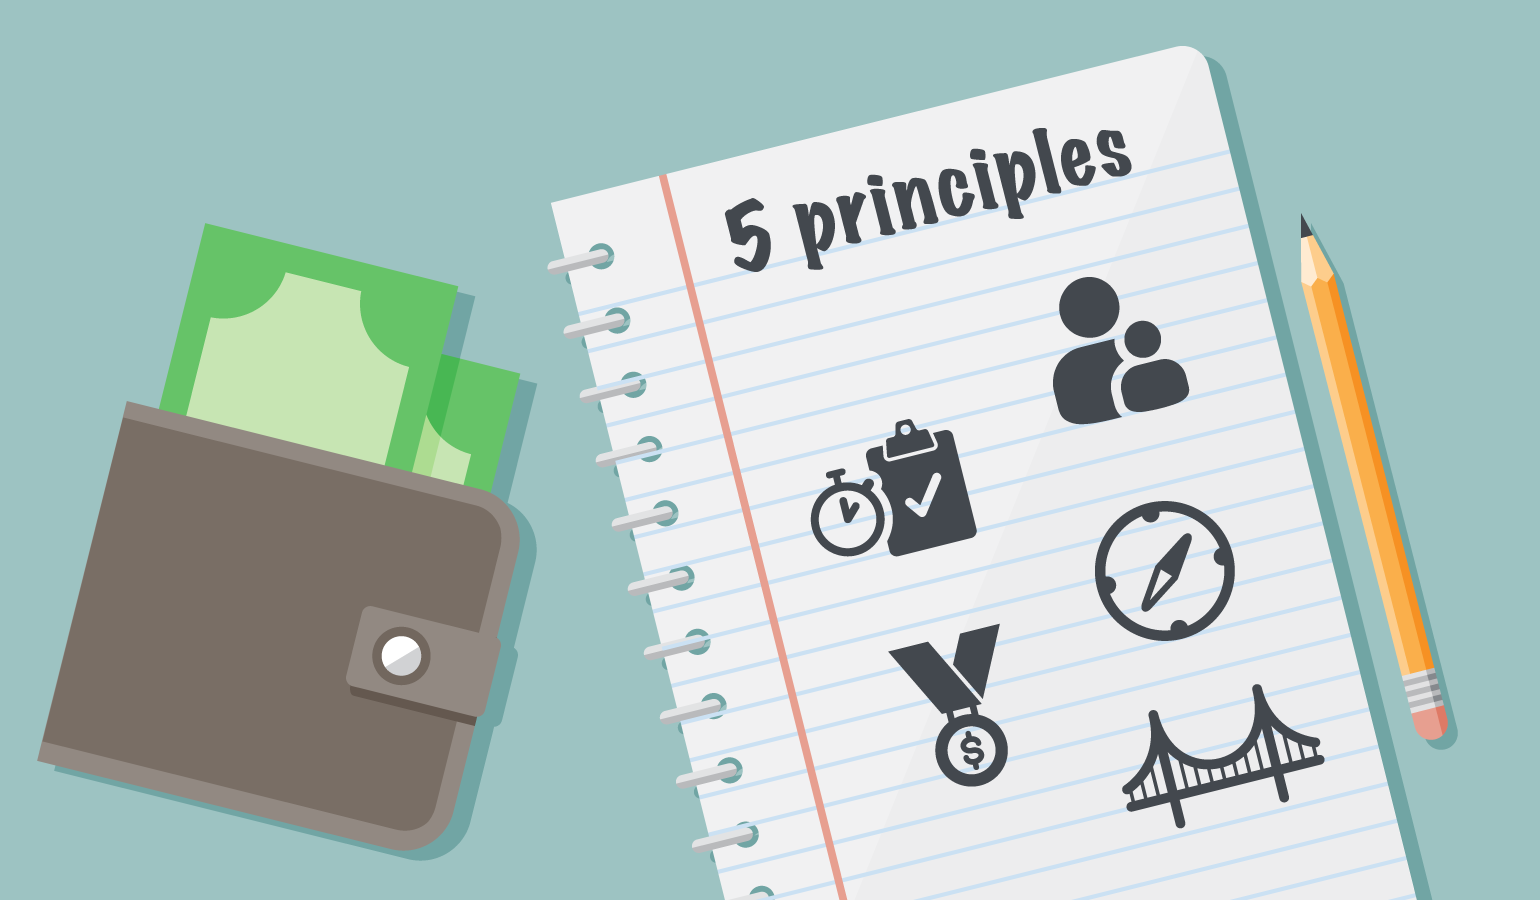 Notebook sketch of icons showing 5 financial education principles